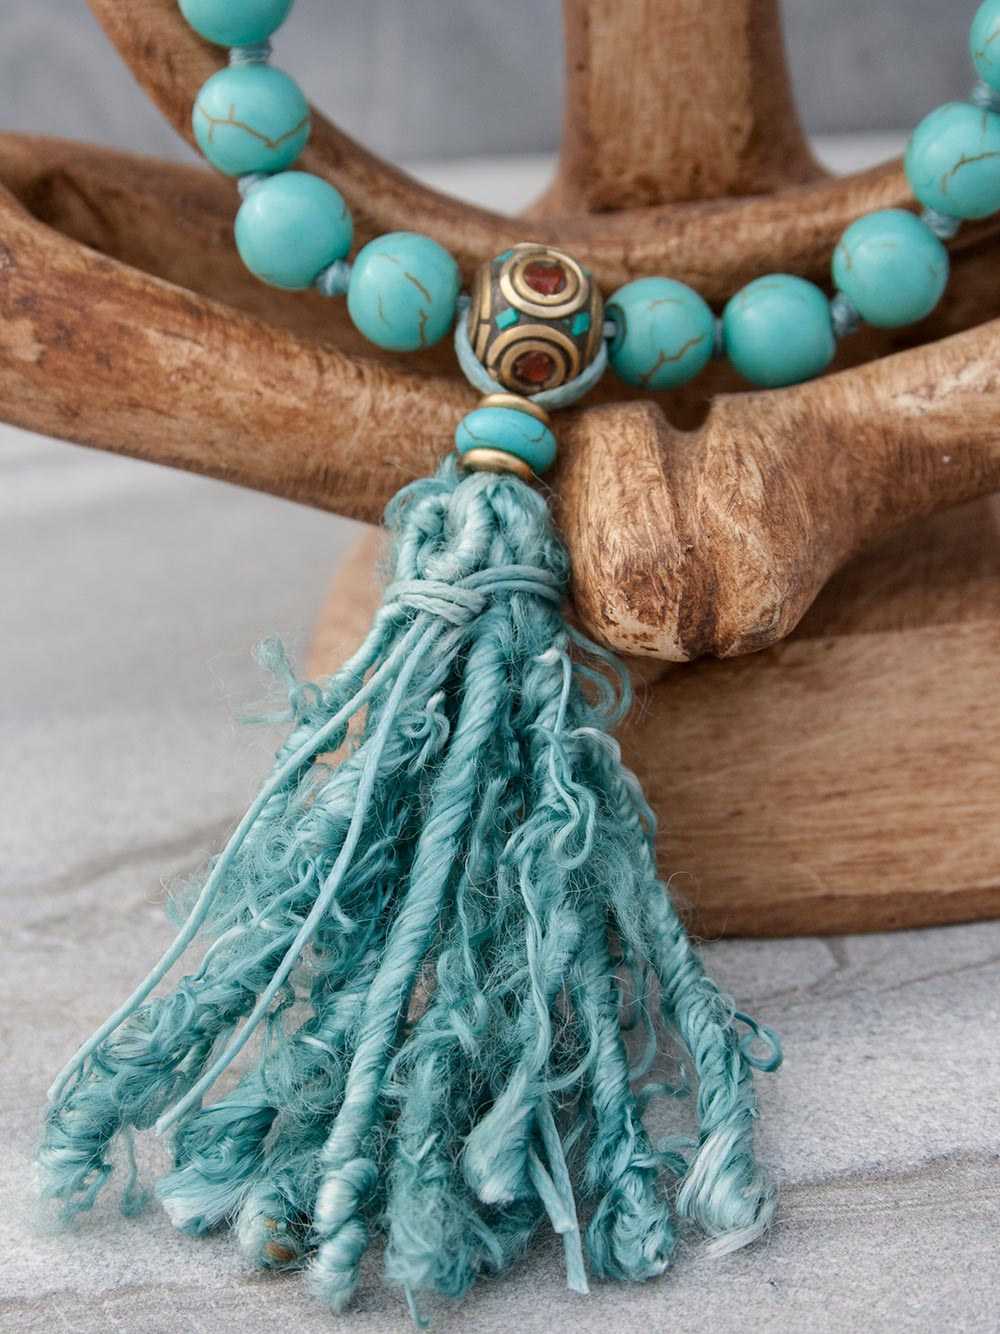 Caprice Hand-Held Mala: 27 beads in 10mm capriccio aqua howlite, with howlite and brass/coral/turquoise Guru setting and sari silk tassel. View of Guru setting.